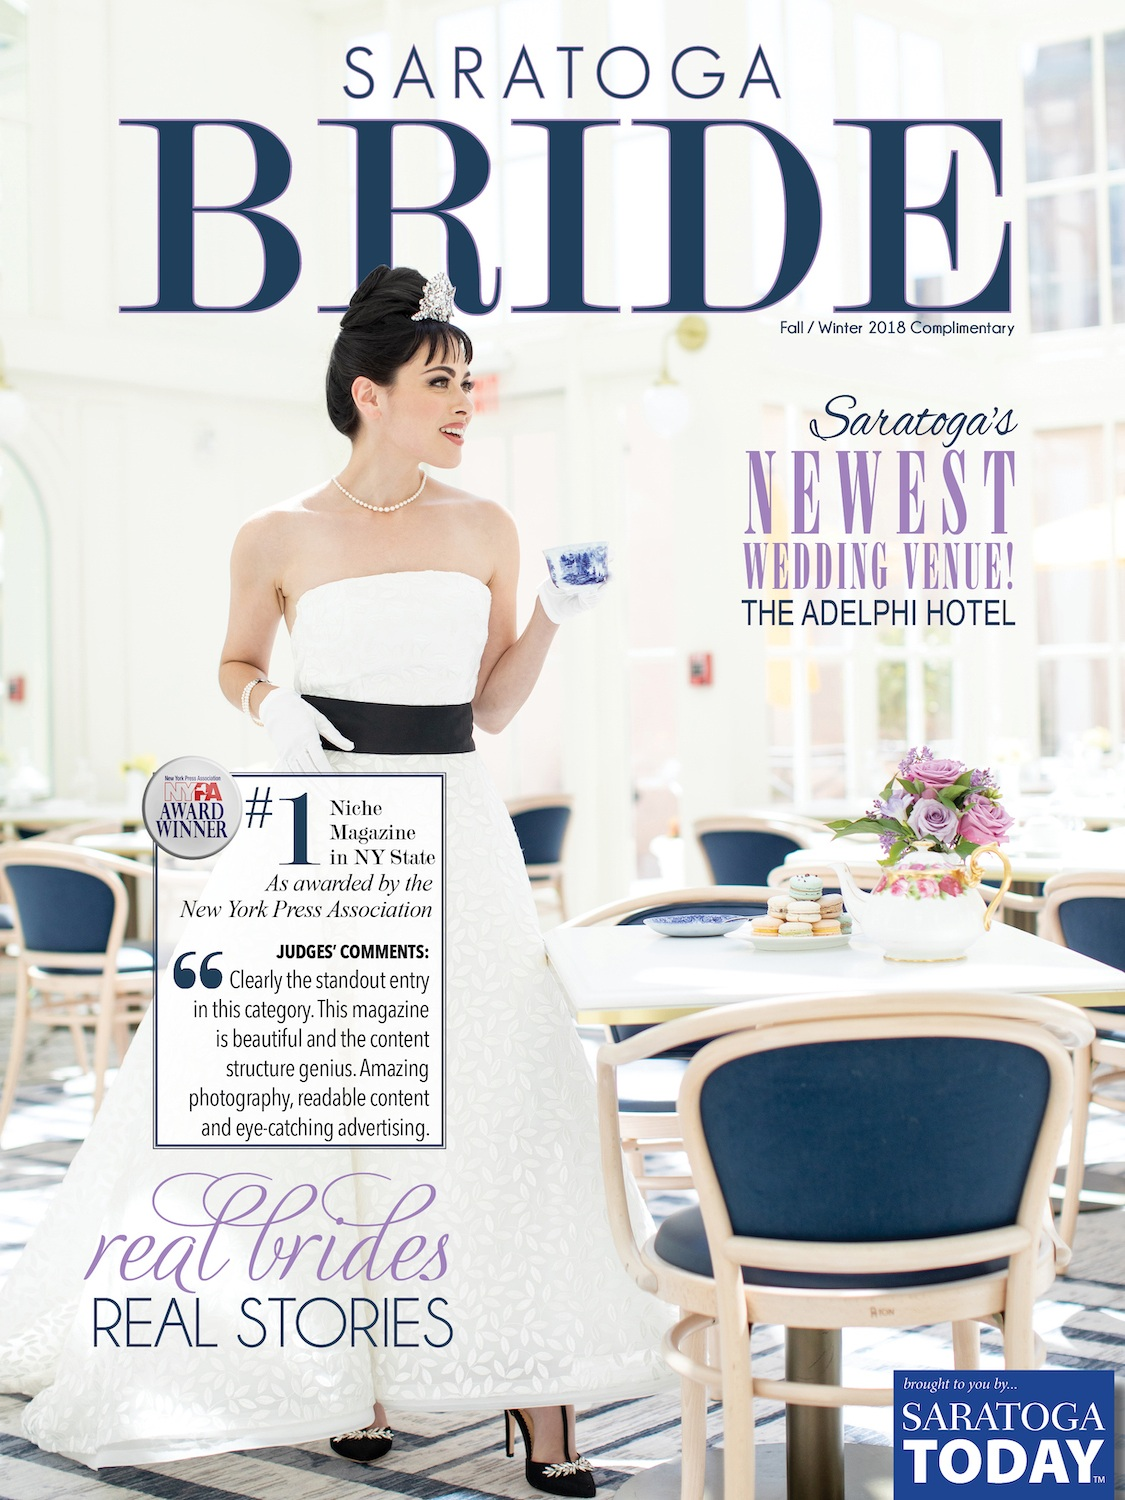 The Audrey Hepburn photo shoot we did with Something Bleu Bridal for Saratoga Bride magazine will always be among the best. This edition recently won its fourth award and our Breakfast at Tiffany's inspired headpiece made the cover.